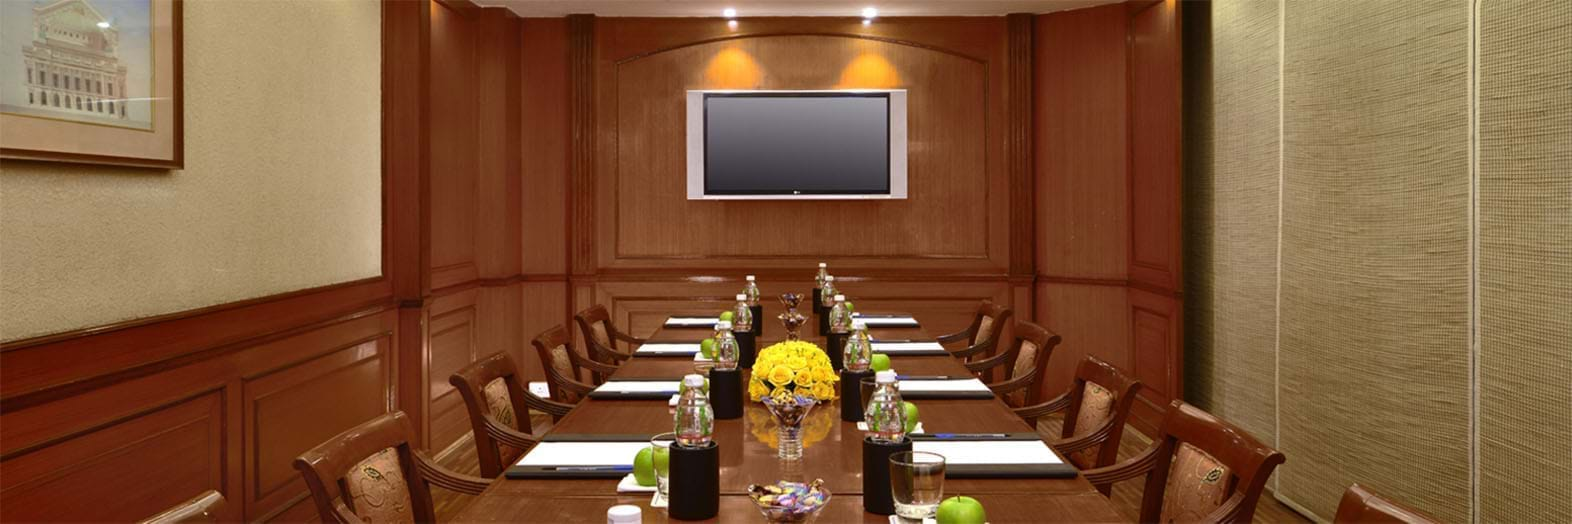 Hotels in Ahmedabad - Meeting Venues